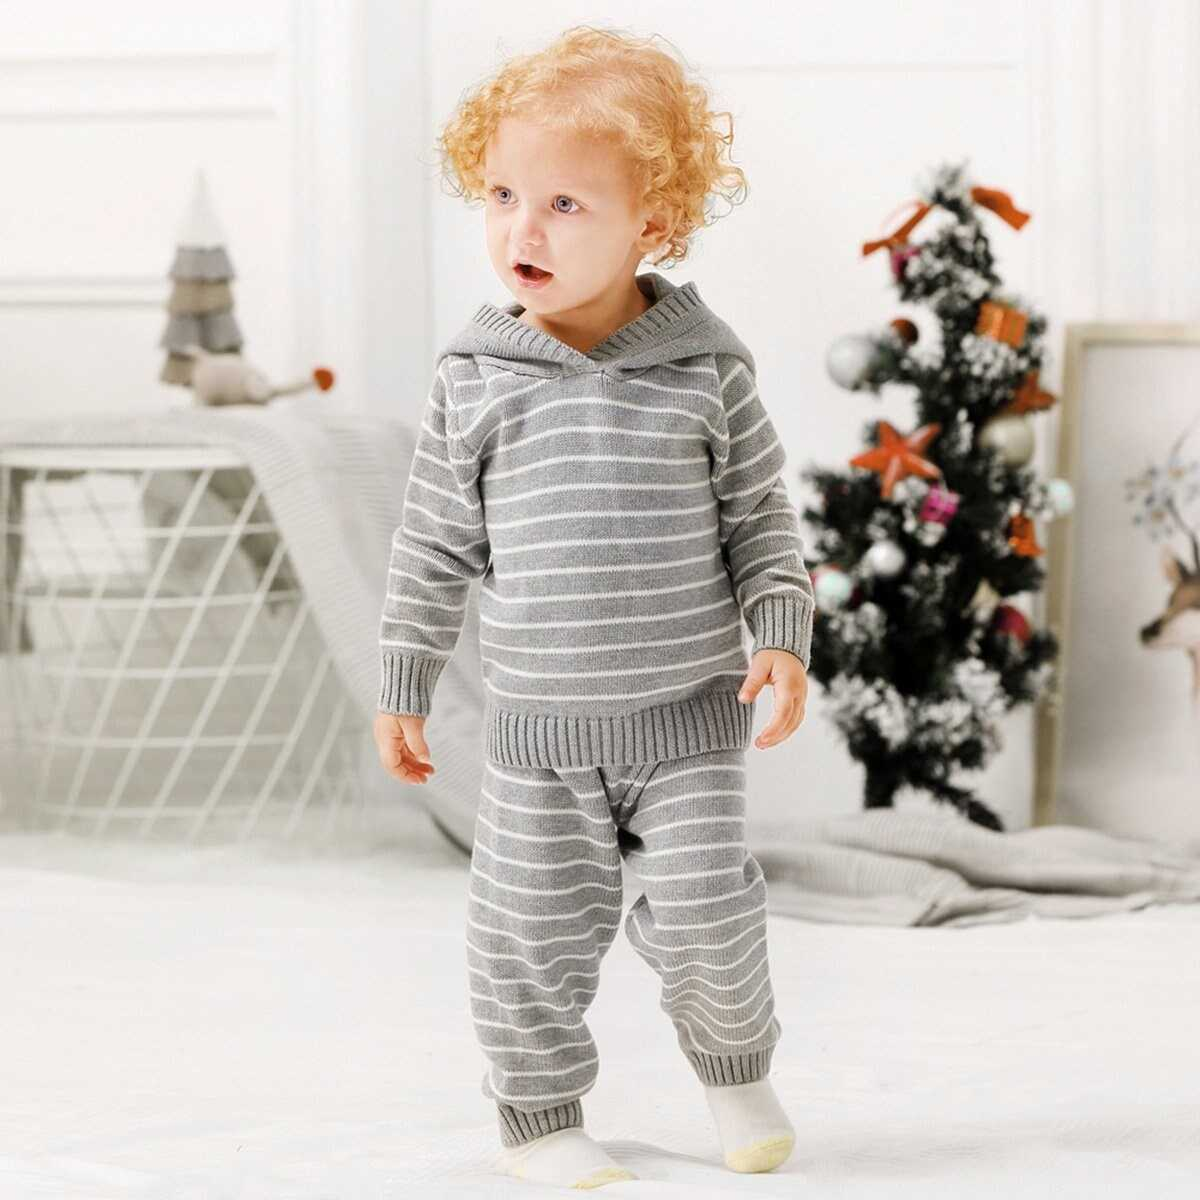 Toddler Boys Striped Hooded Knit Top With Pants - Shein - GOOFASH